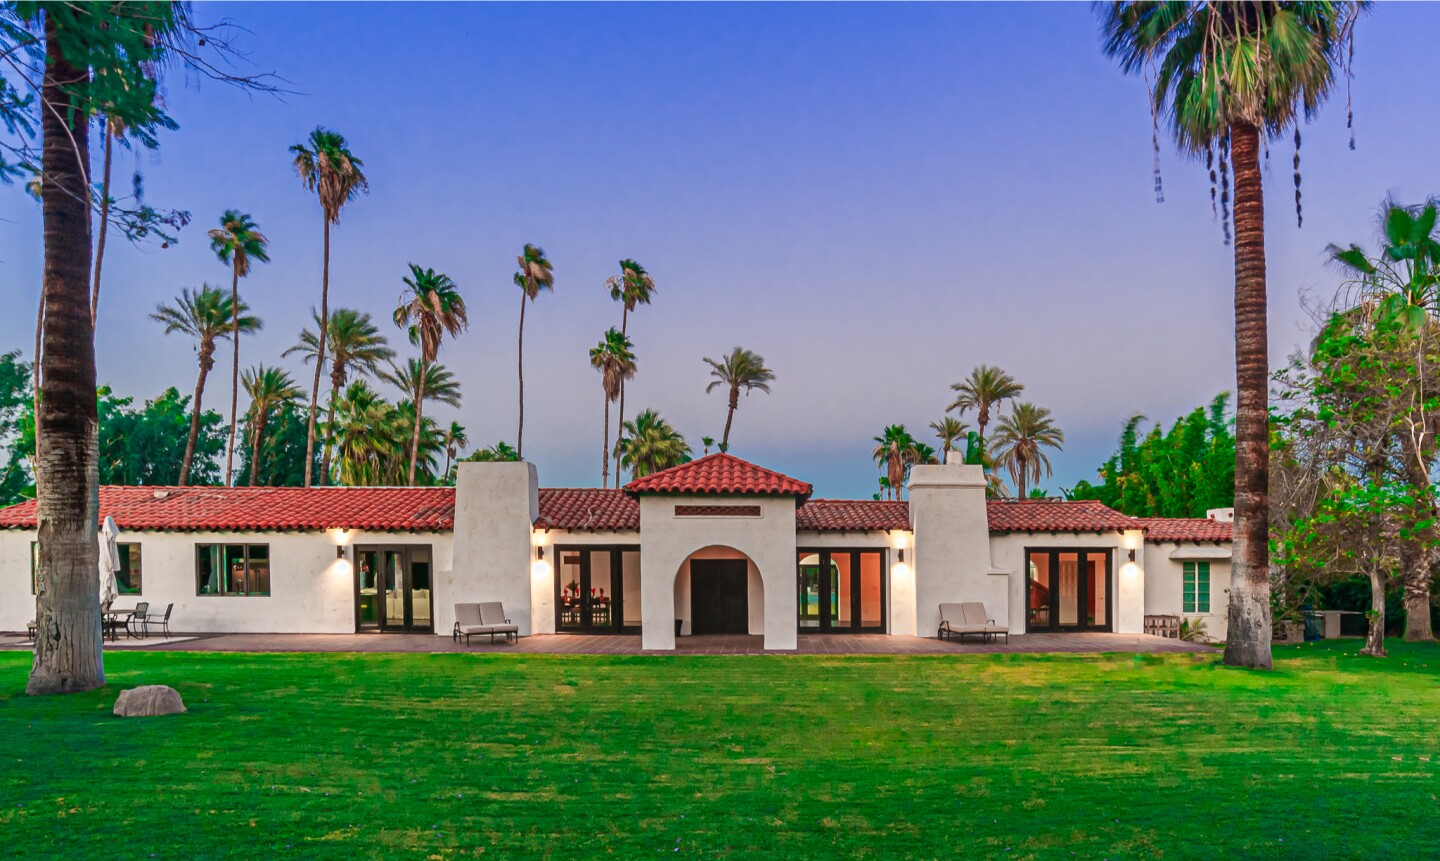 The two-acre spread includes a Spanish Colonial-style home, guesthouse, swimming pool, sunken tennis court and cantina.